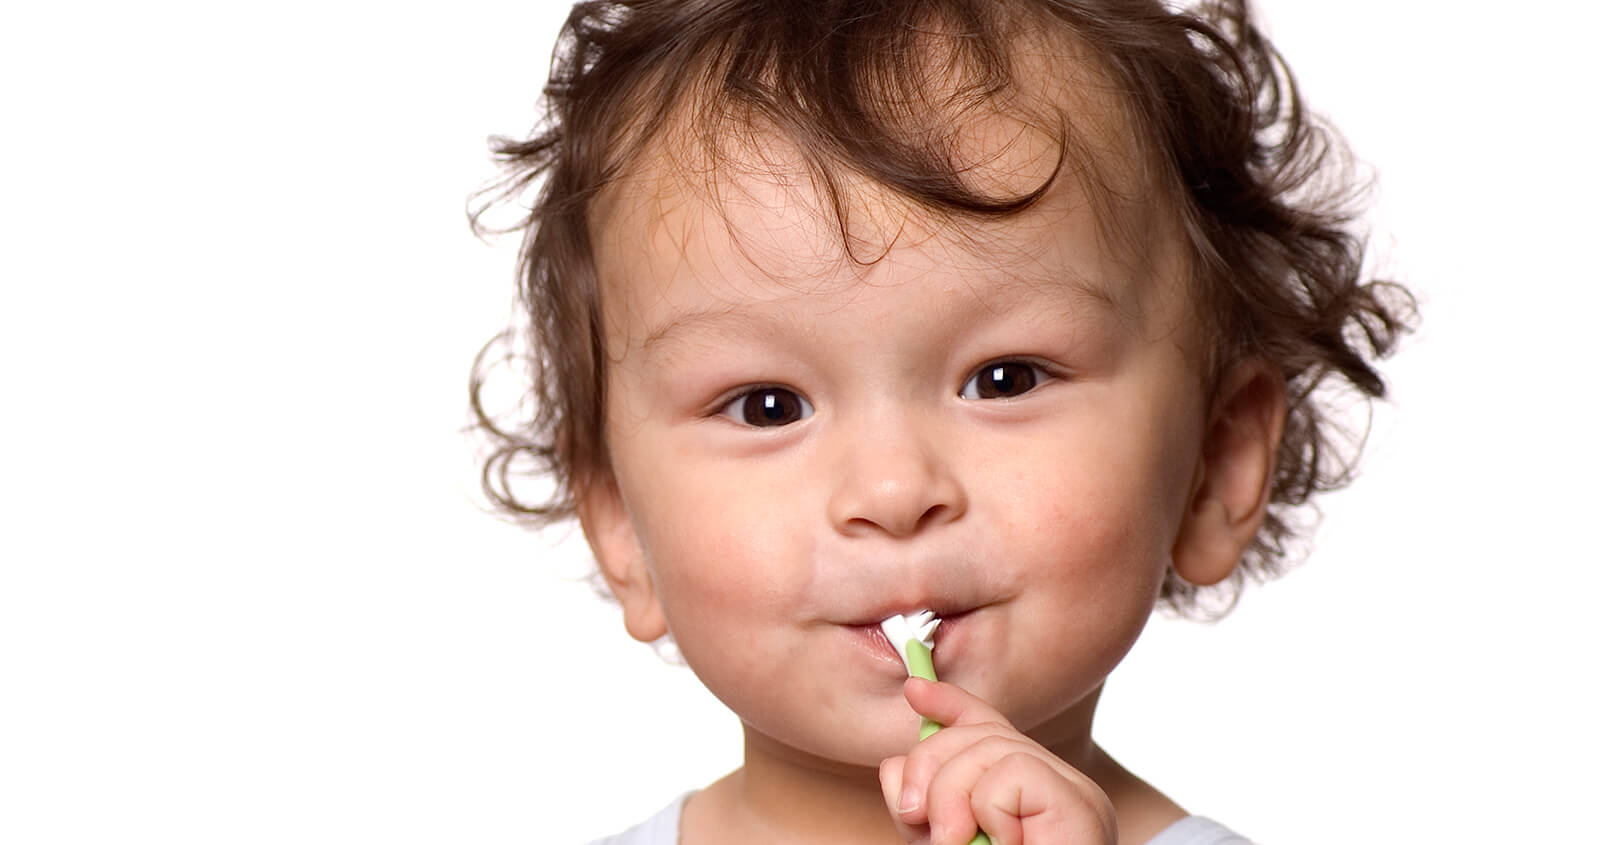 How can I find a practice that offers dental care for kids in Azusa, CA?